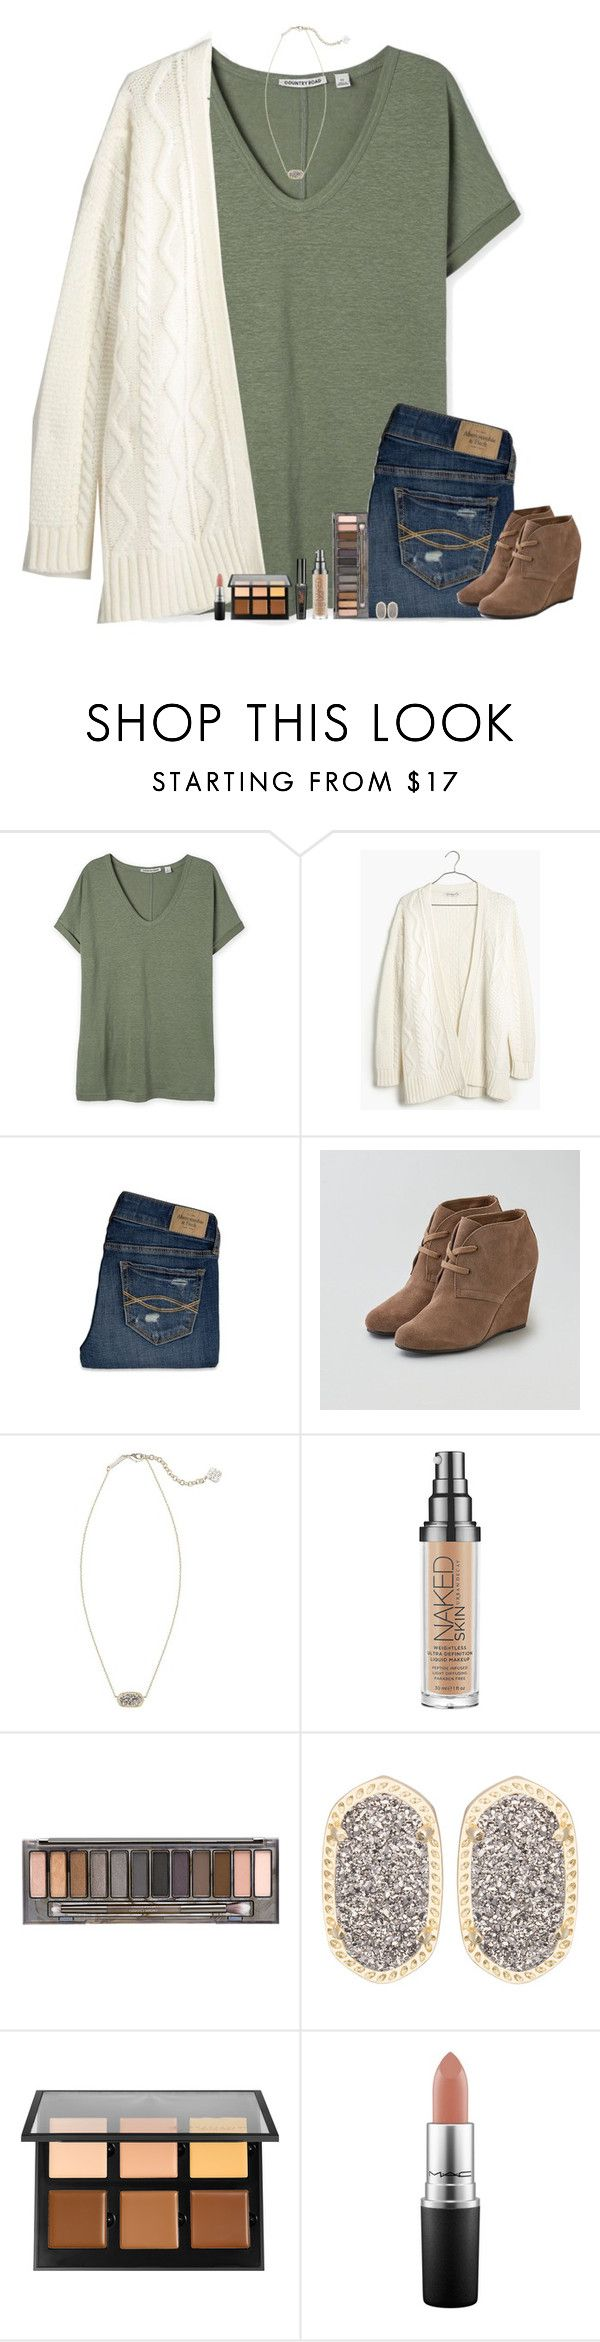 """""""•And I know, you're gonna be away a while, but I've got no plans at all to leave•"""" by bloom17 ❤ liked on Polyvore featuring moda, Madewell, Abercrombie & Fitch, American Eagle Outfitters, Kendra Scott, Urban Decay, Anastasia Beverly Hills e MAC Cosmetics"""